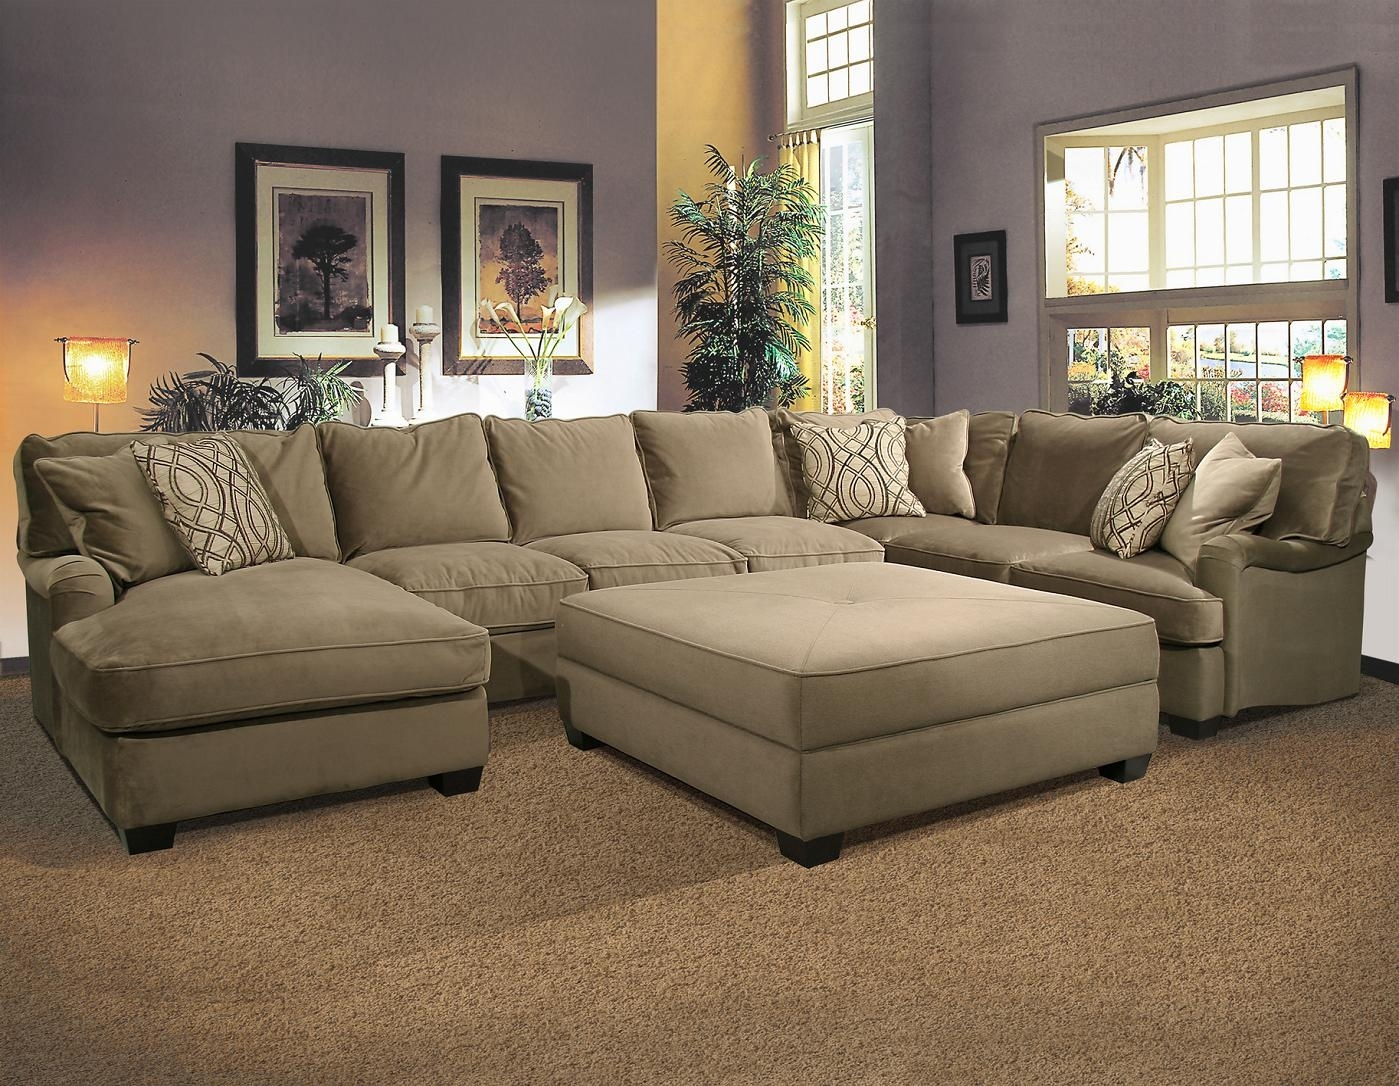 Bostonian Sectional Sofafairmont Seating | Home | Pinterest Inside Sofas With Large Ottoman (View 2 of 10)